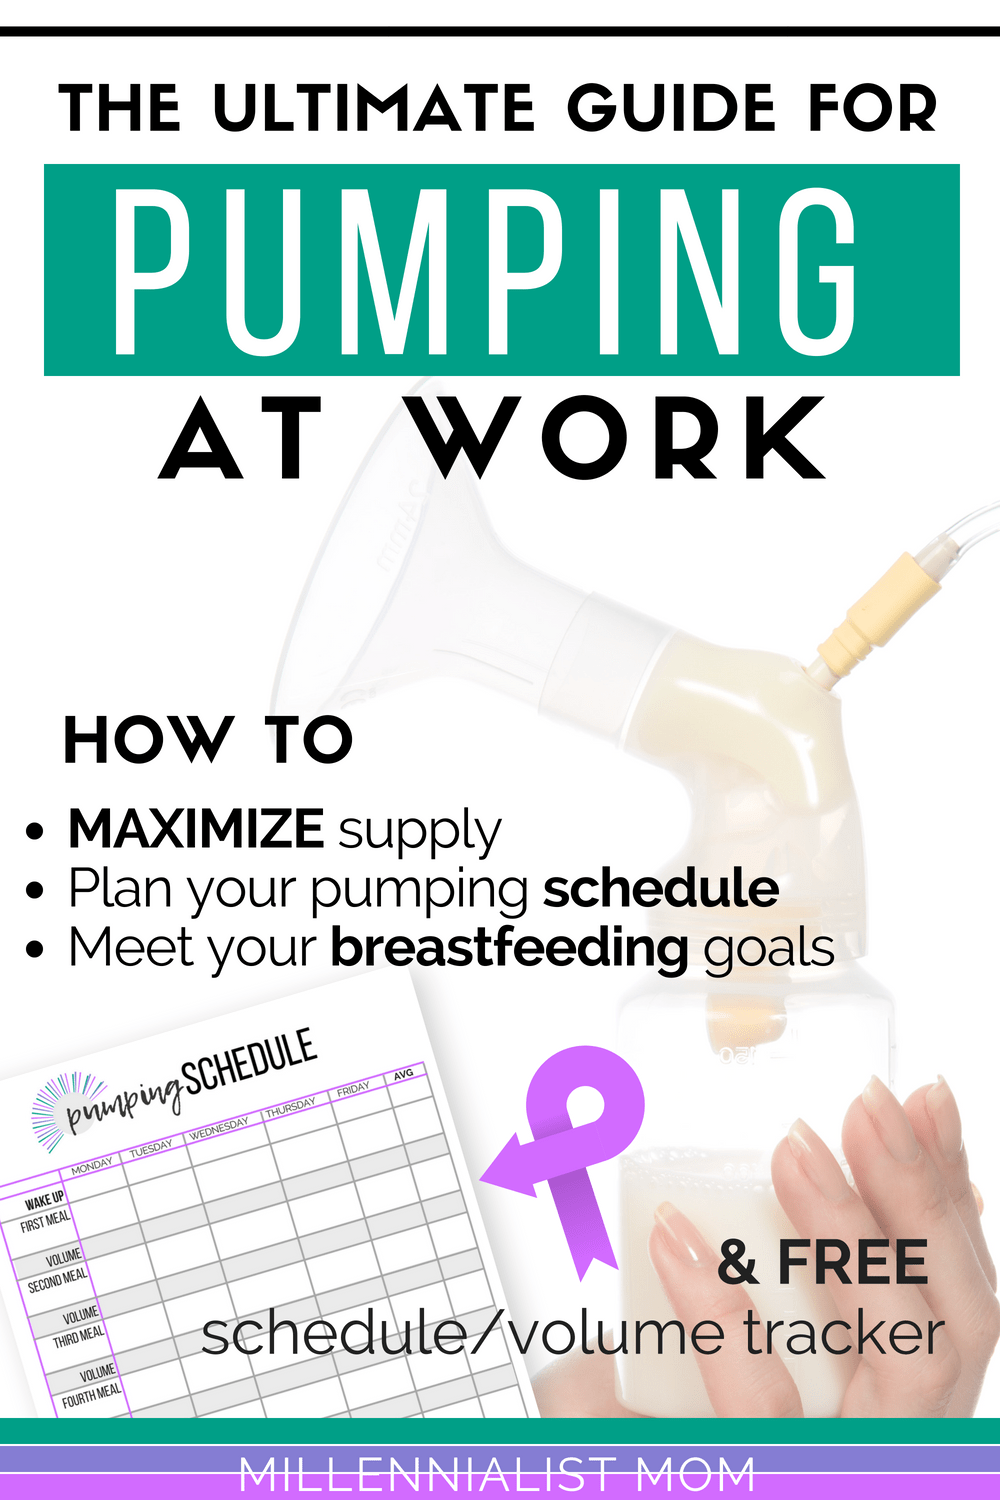 The ultimate guide for #pumping at work. Learn how to get the most out of your supply and build a freezer stash, PLAN your best pumping schedule for work (and make it happen), and Reach your biggest breastfeeding goals easily! It's easier than you think, and sooo worth it. #workingmom #breastfeeding